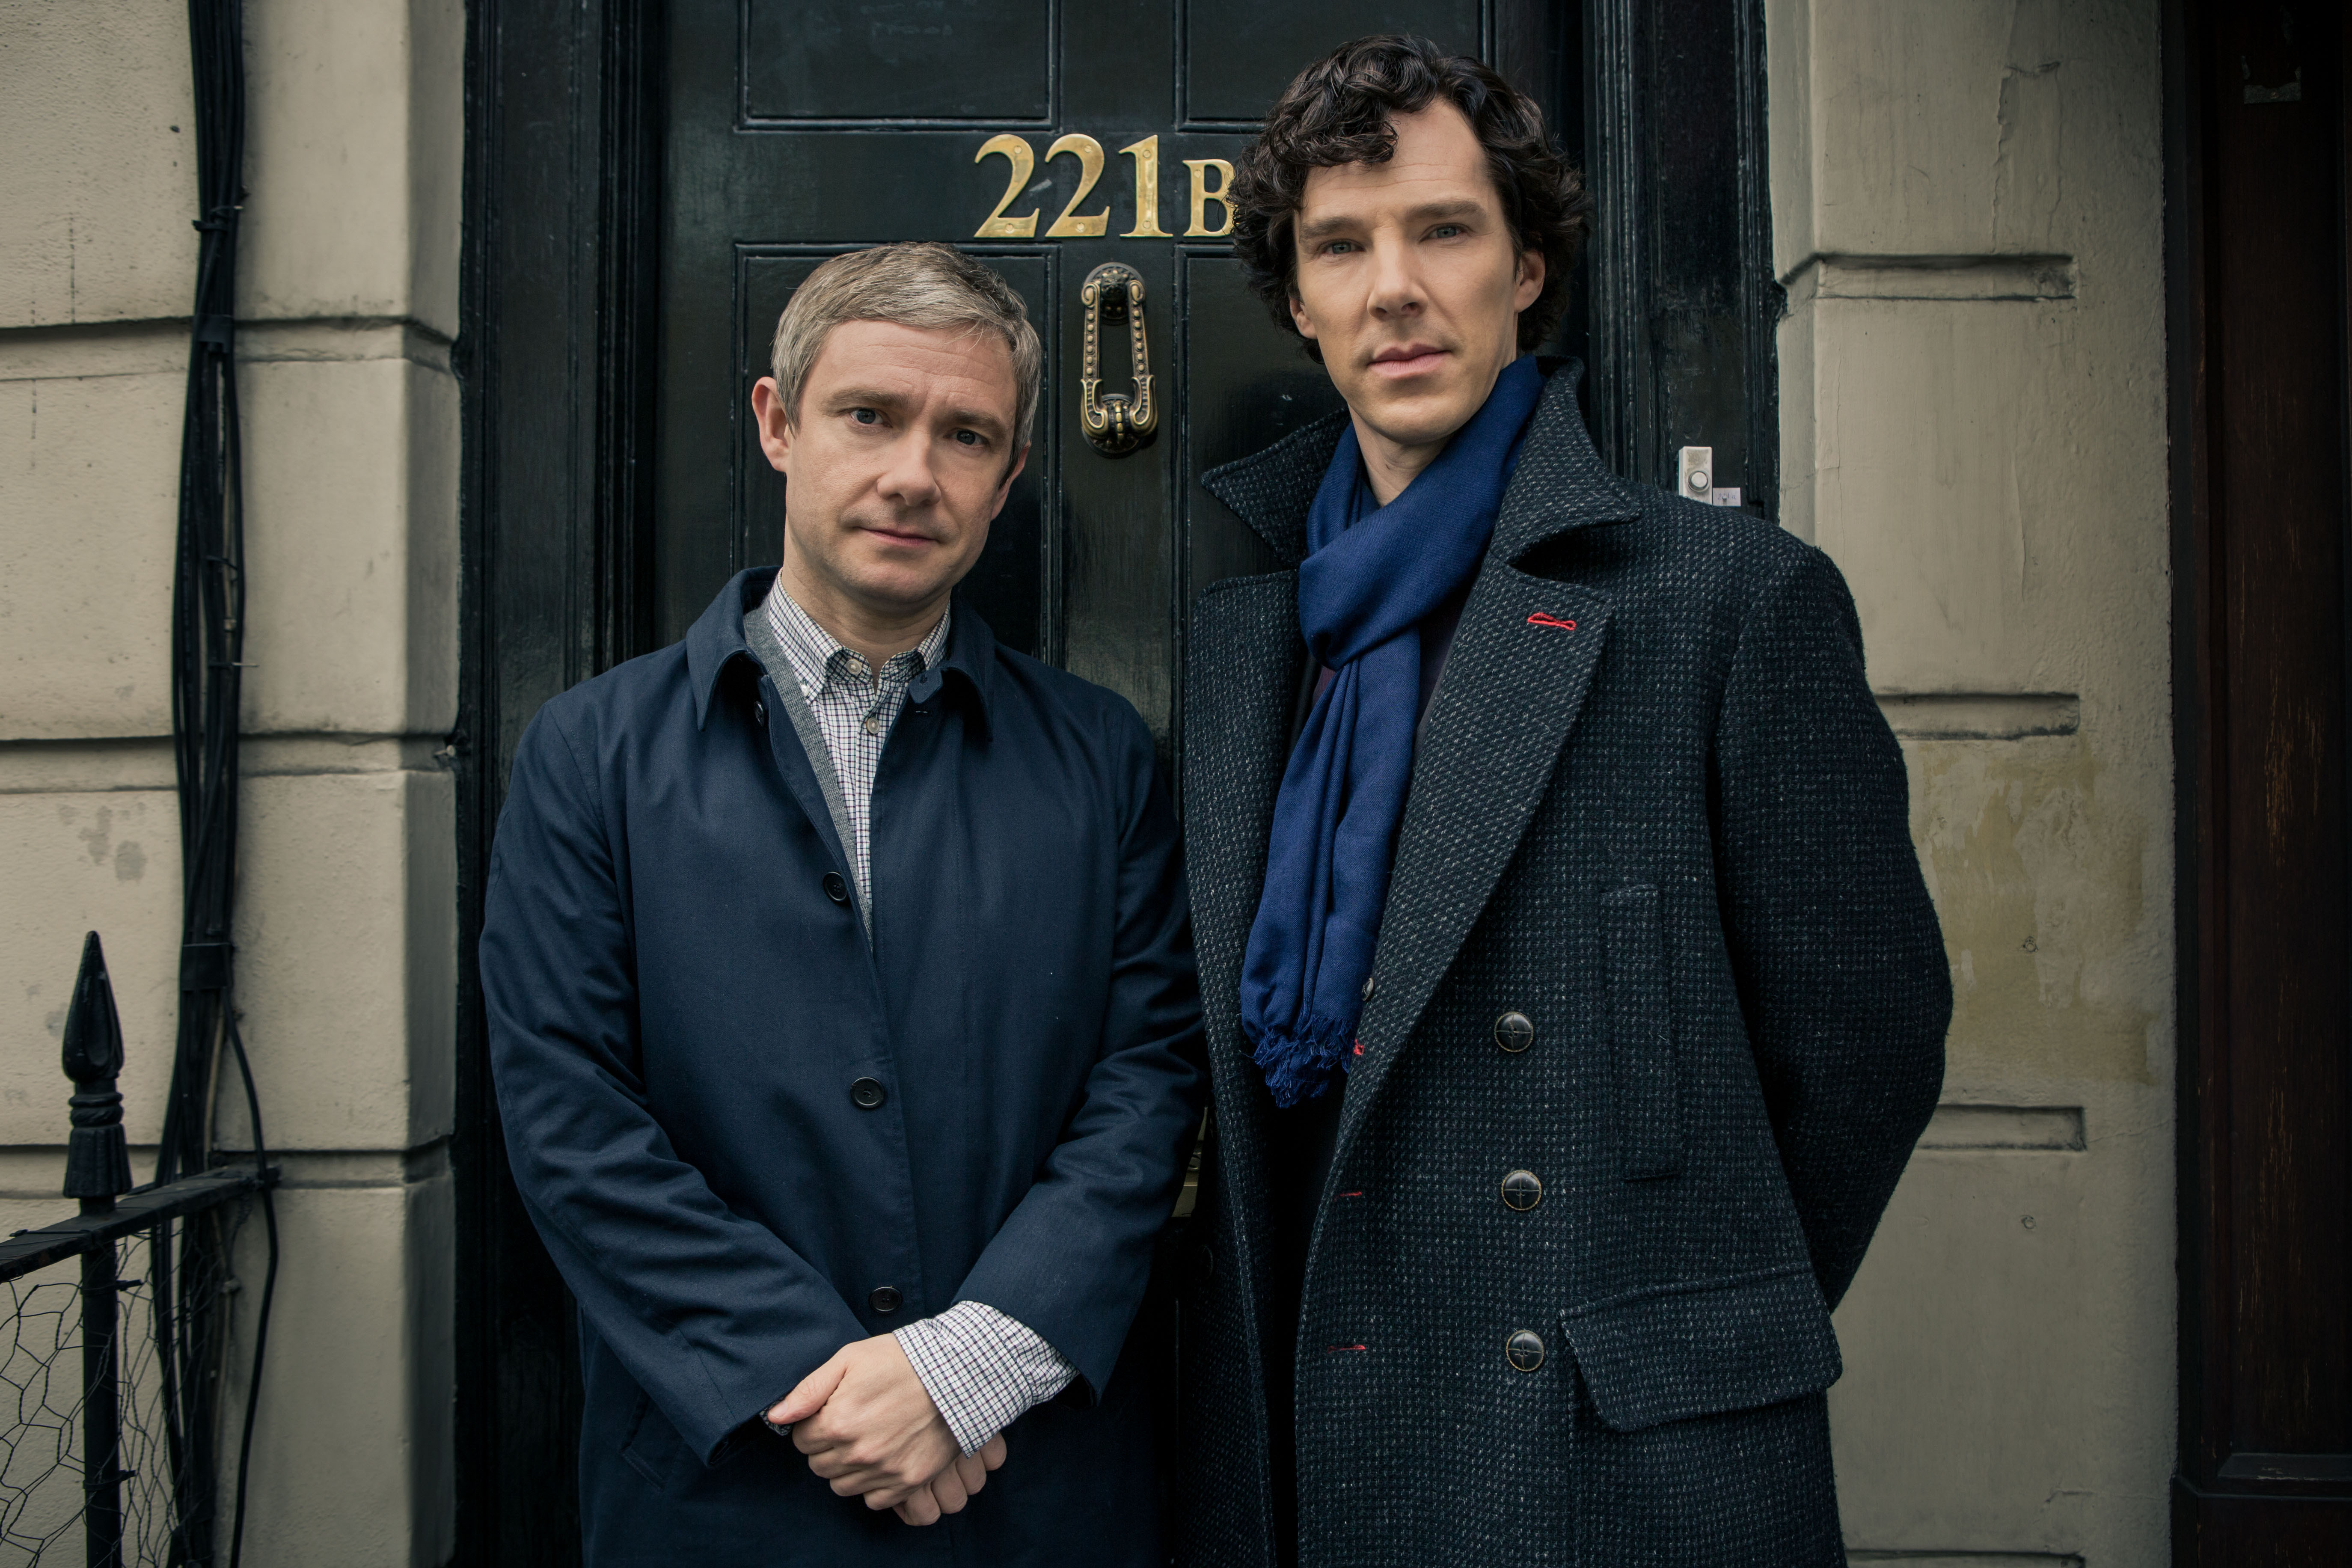 From left: Martin Freeman as Dr. John Watson and Benedict Cumberbatch as Sherlock Holmes